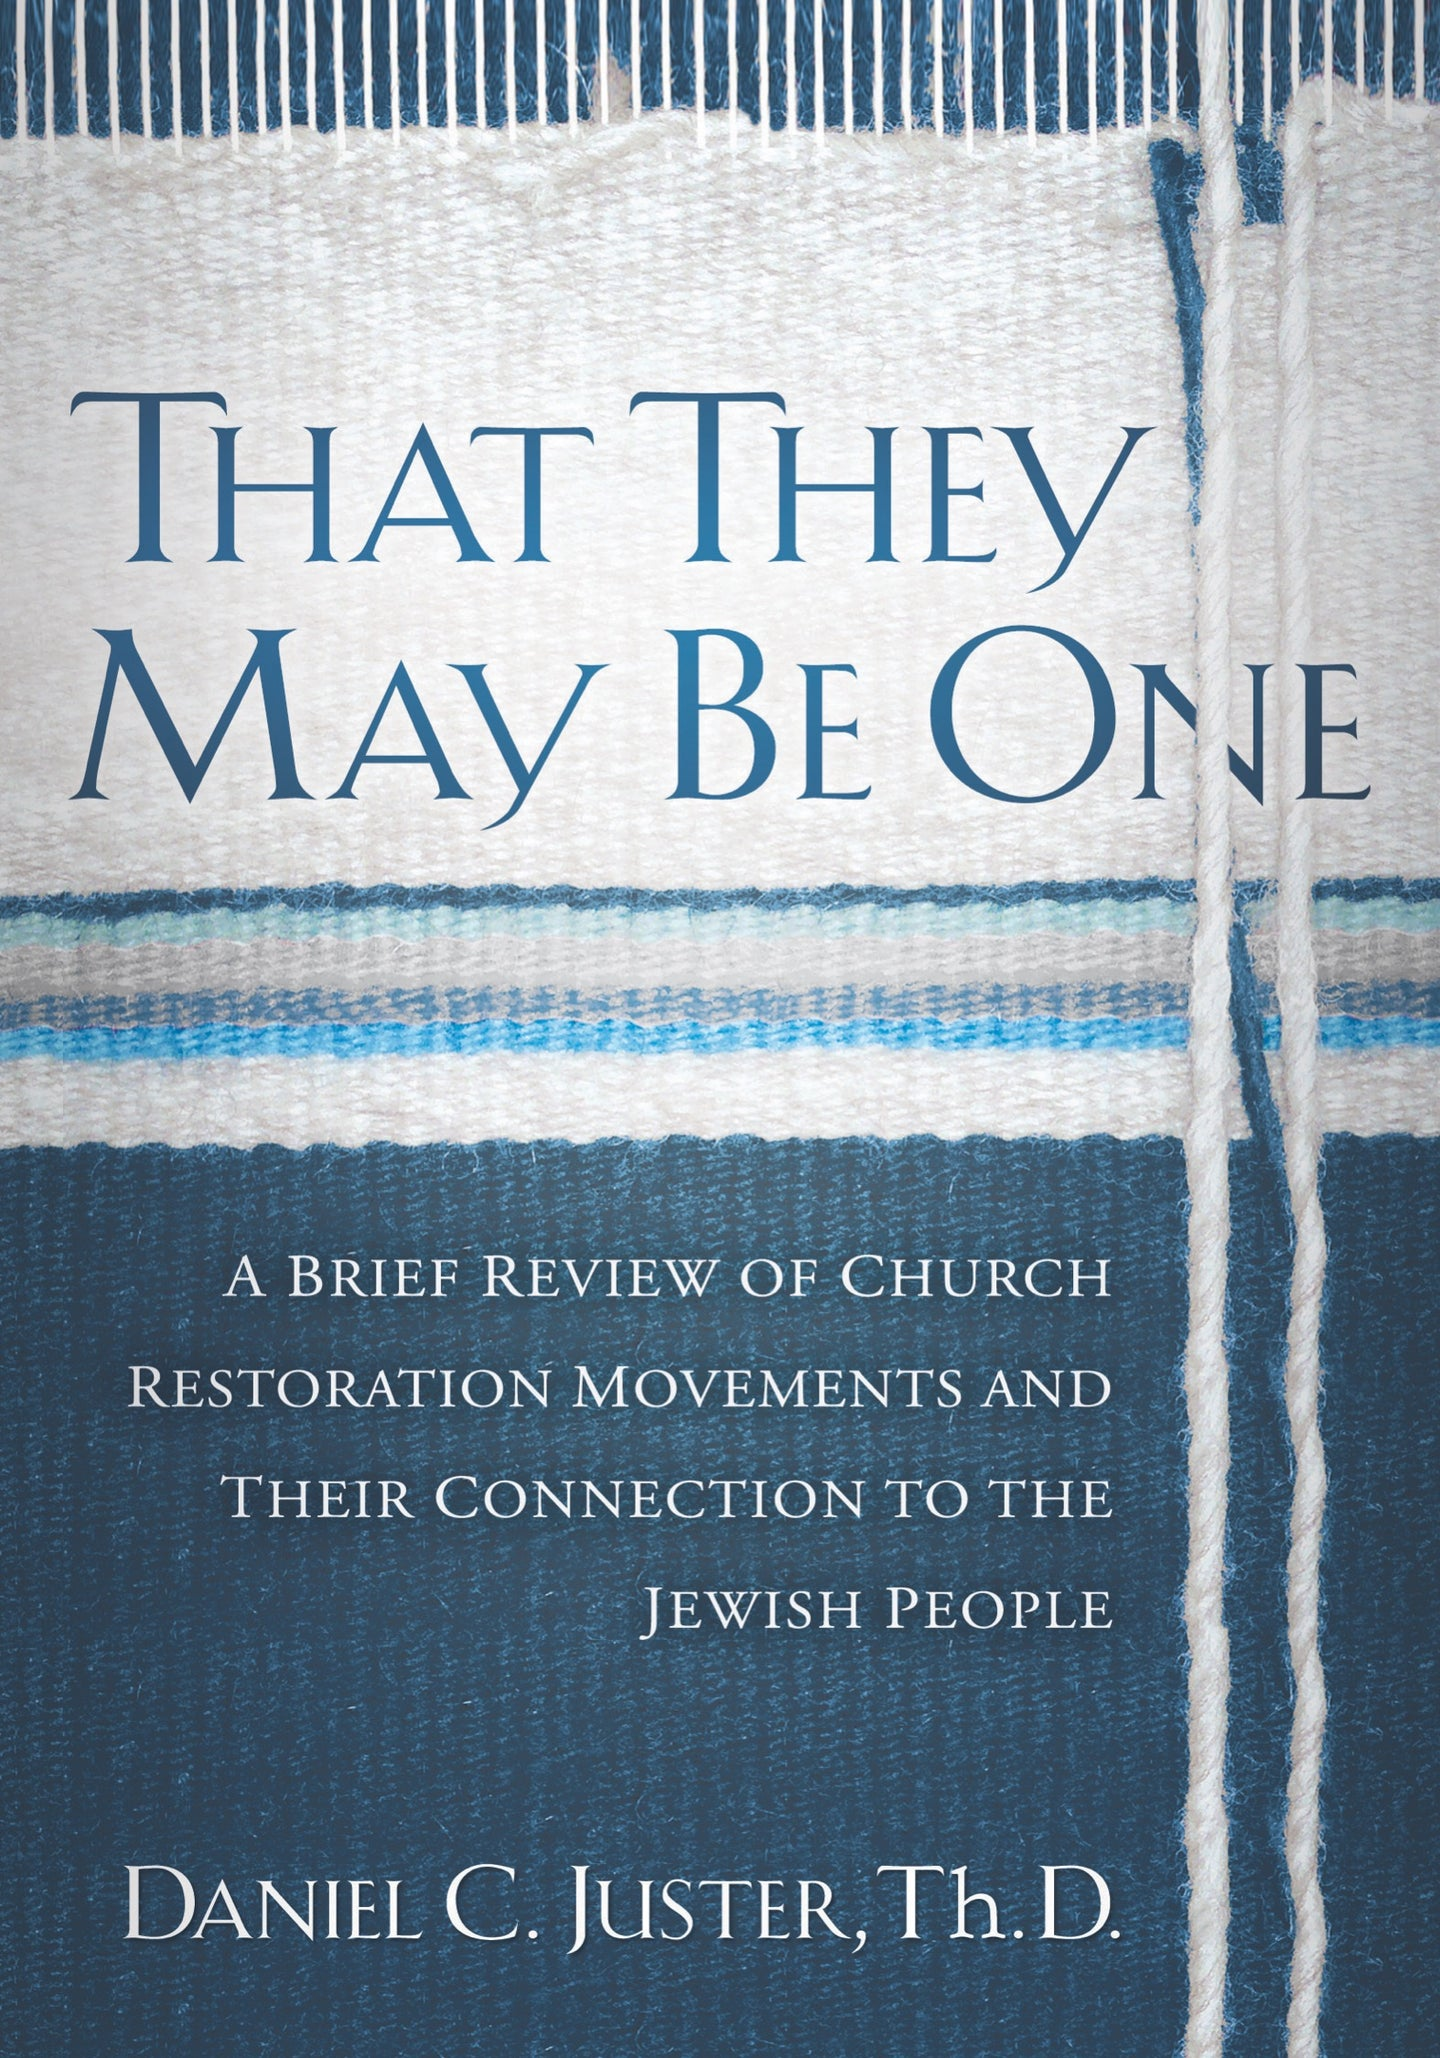 That They May be One: A Brief Review of Church Restoration Movements and Their Connection to the jewish People by Daniel C. Juster, ThD